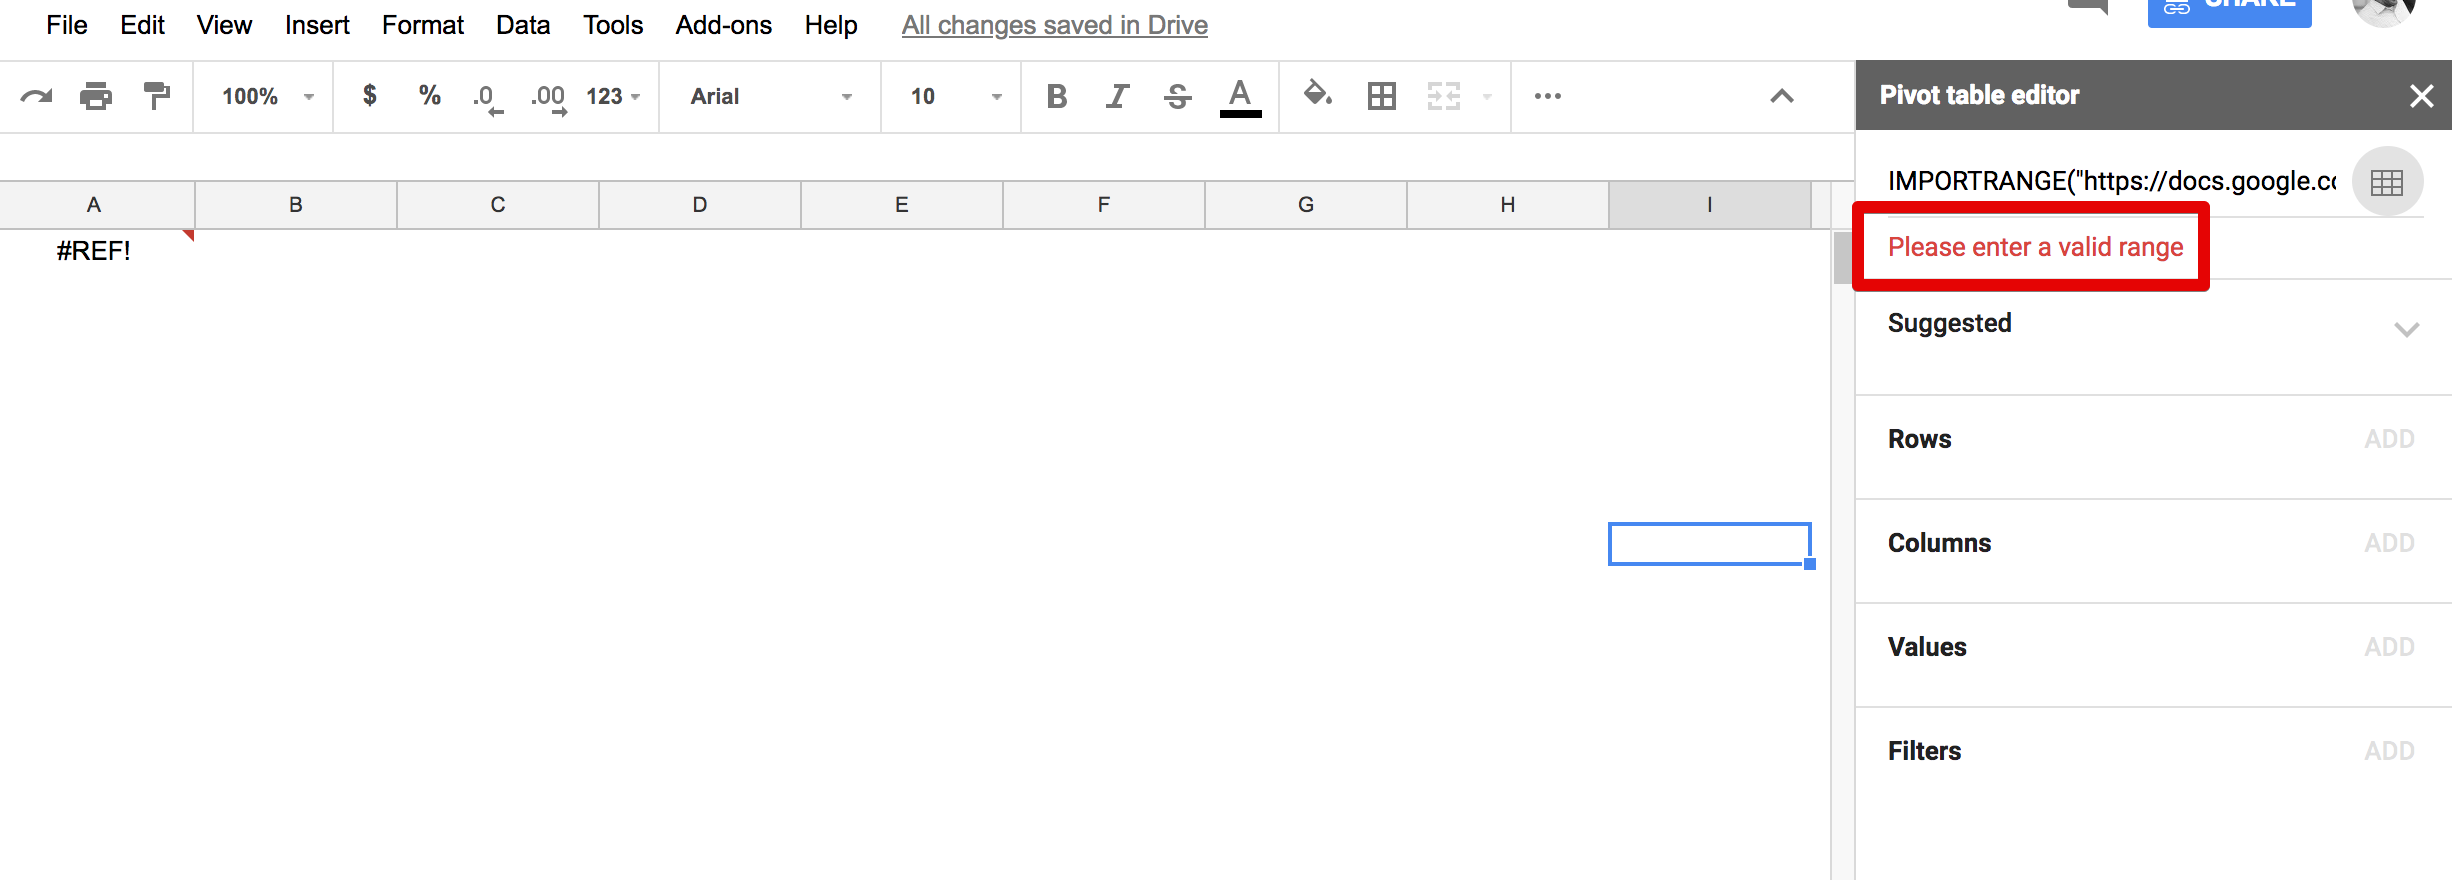 How to link to external data in Google Sheets pivot table